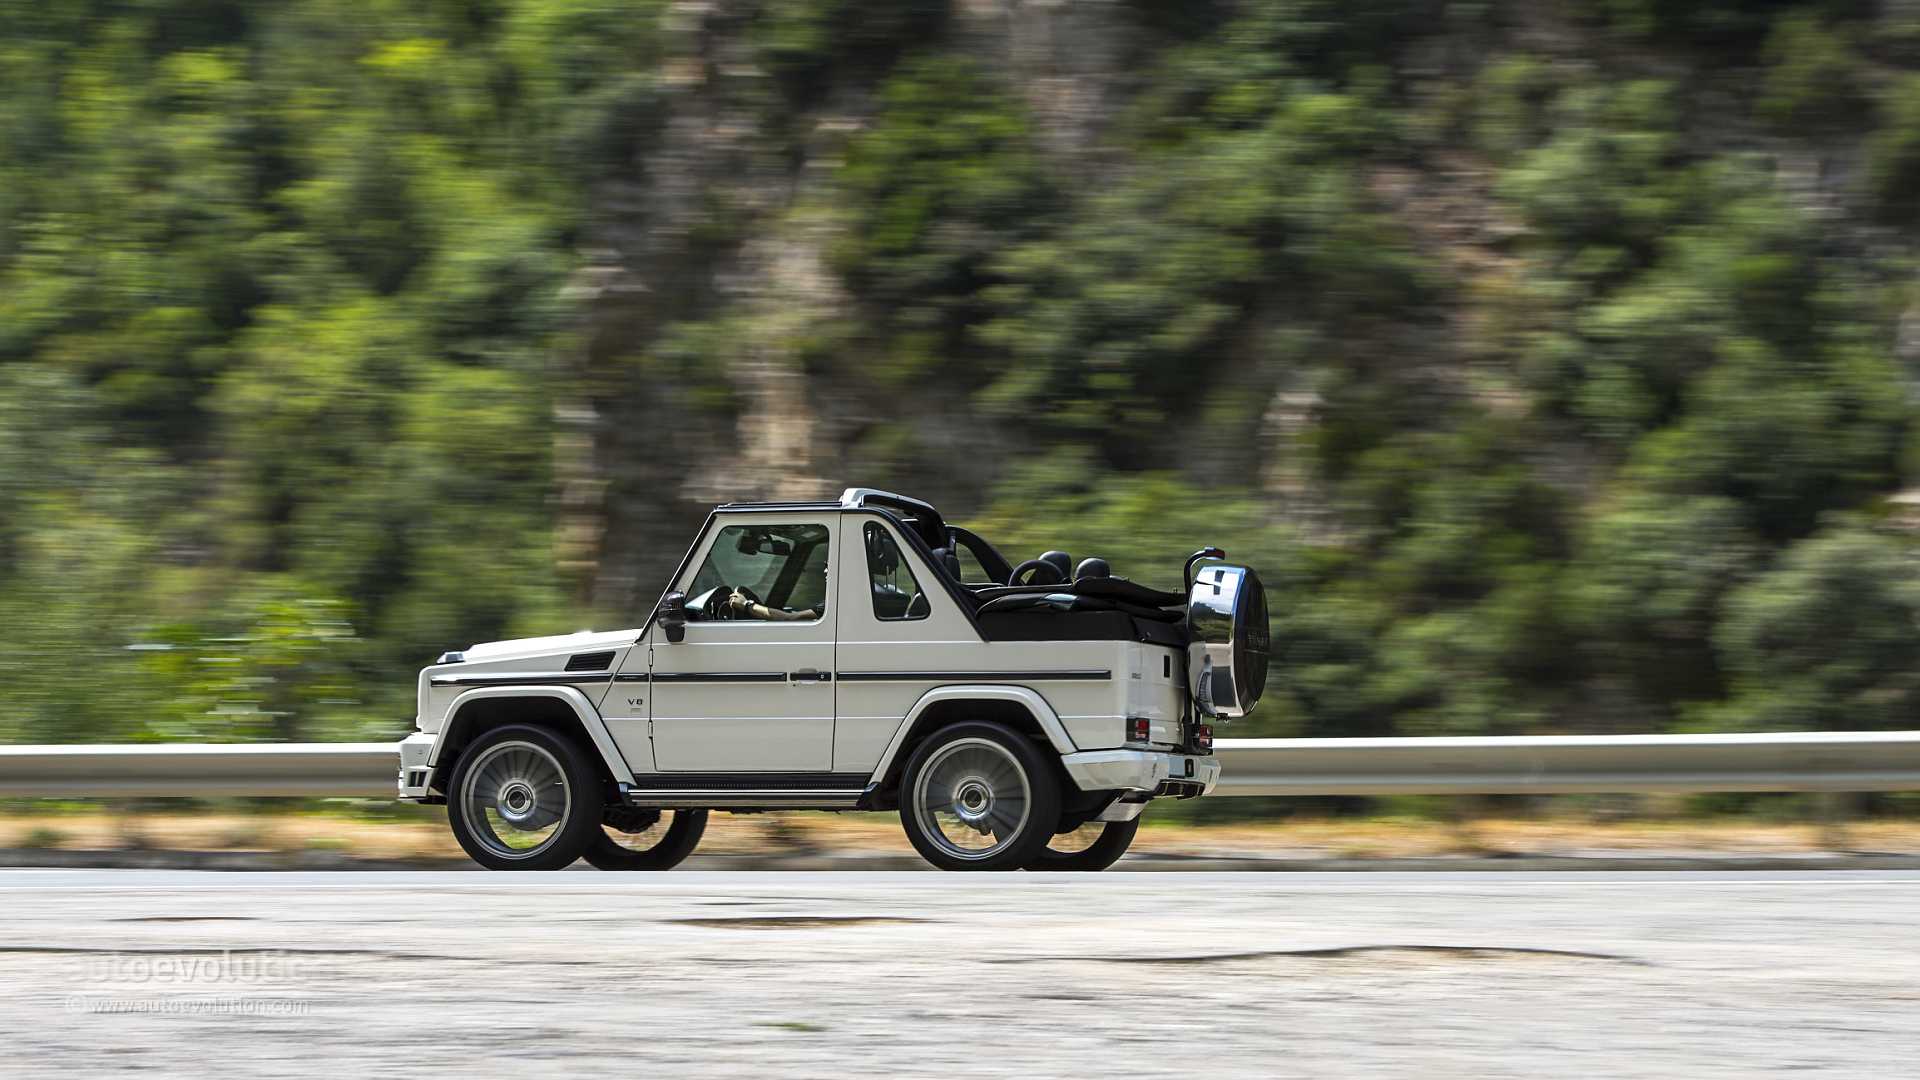 Mercedes benz g 500 cabriolet tested by autoevolution for Mercedes benz g class cabriolet